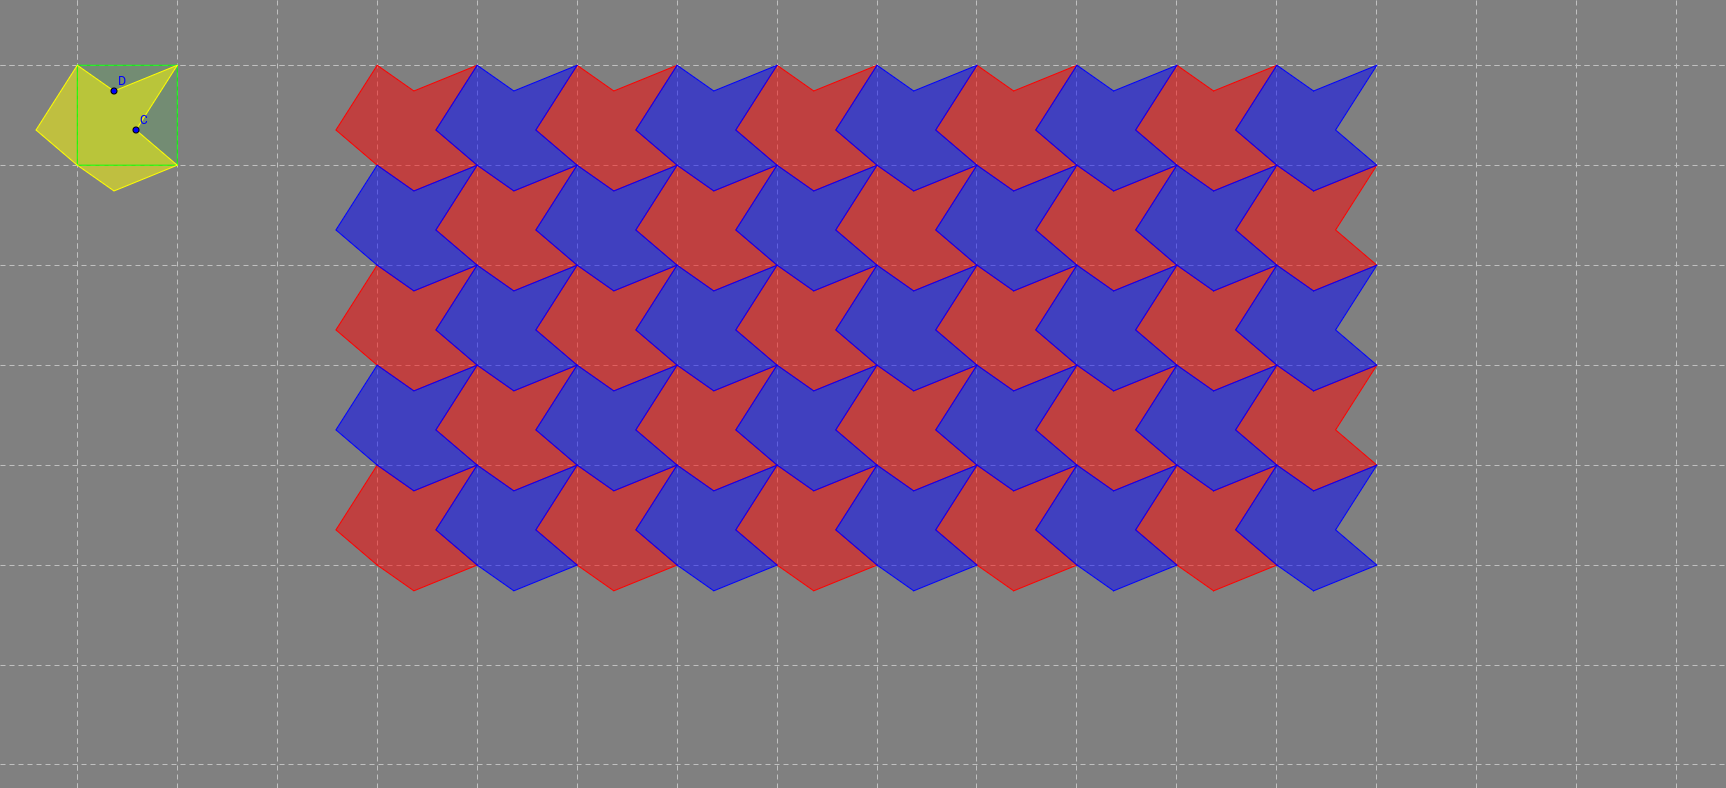 Tessellation from squares